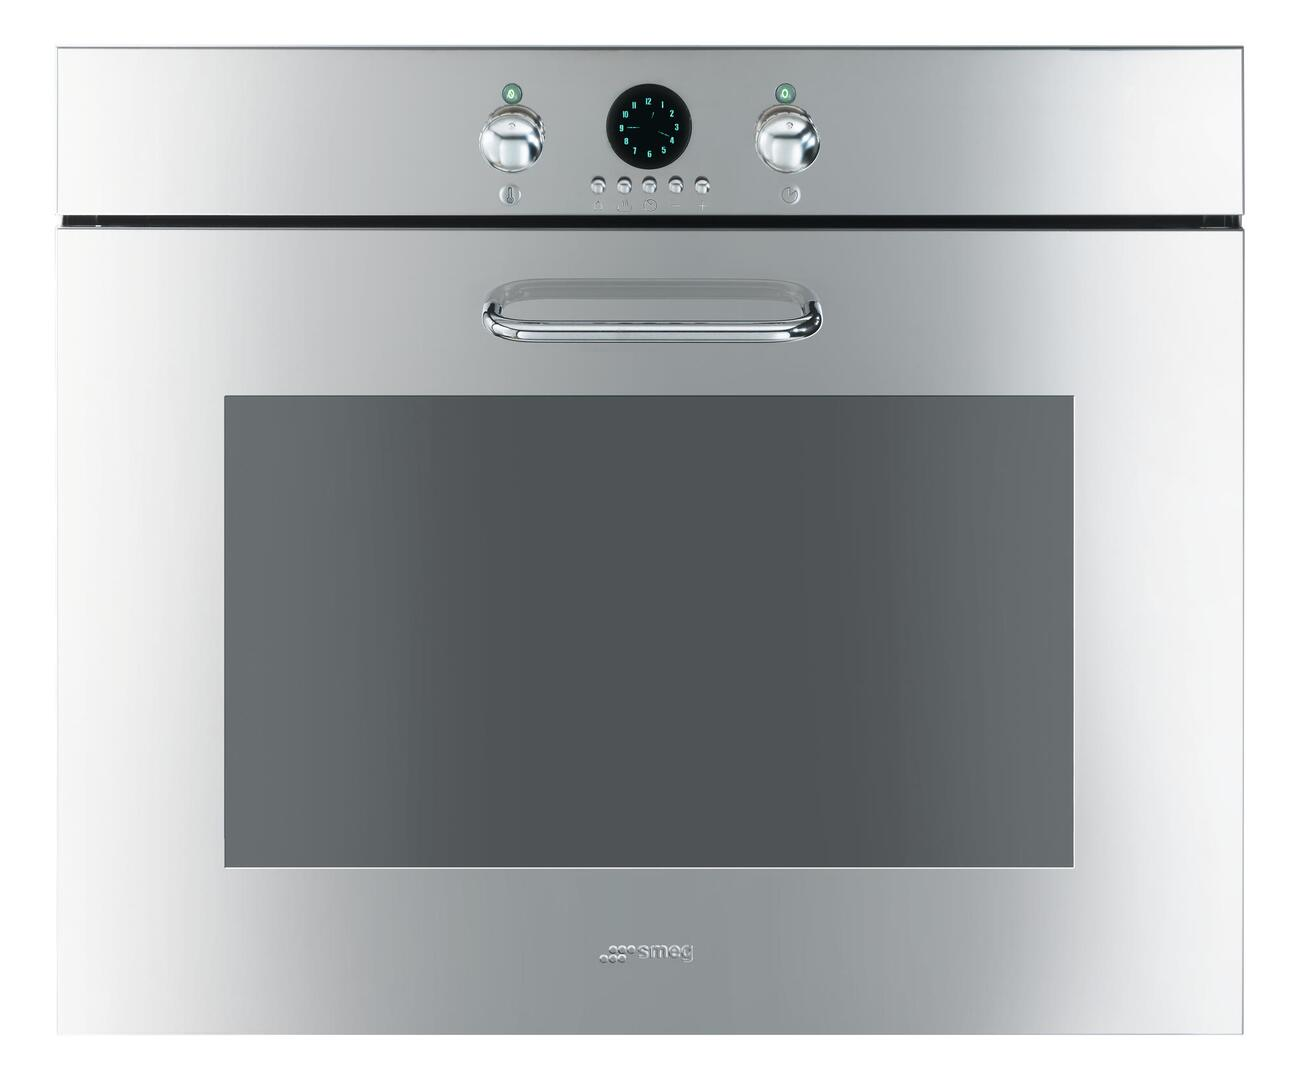 smeg wall oven wiring diagram of summer and winter solstice sc770u 27 inch stainless steel single